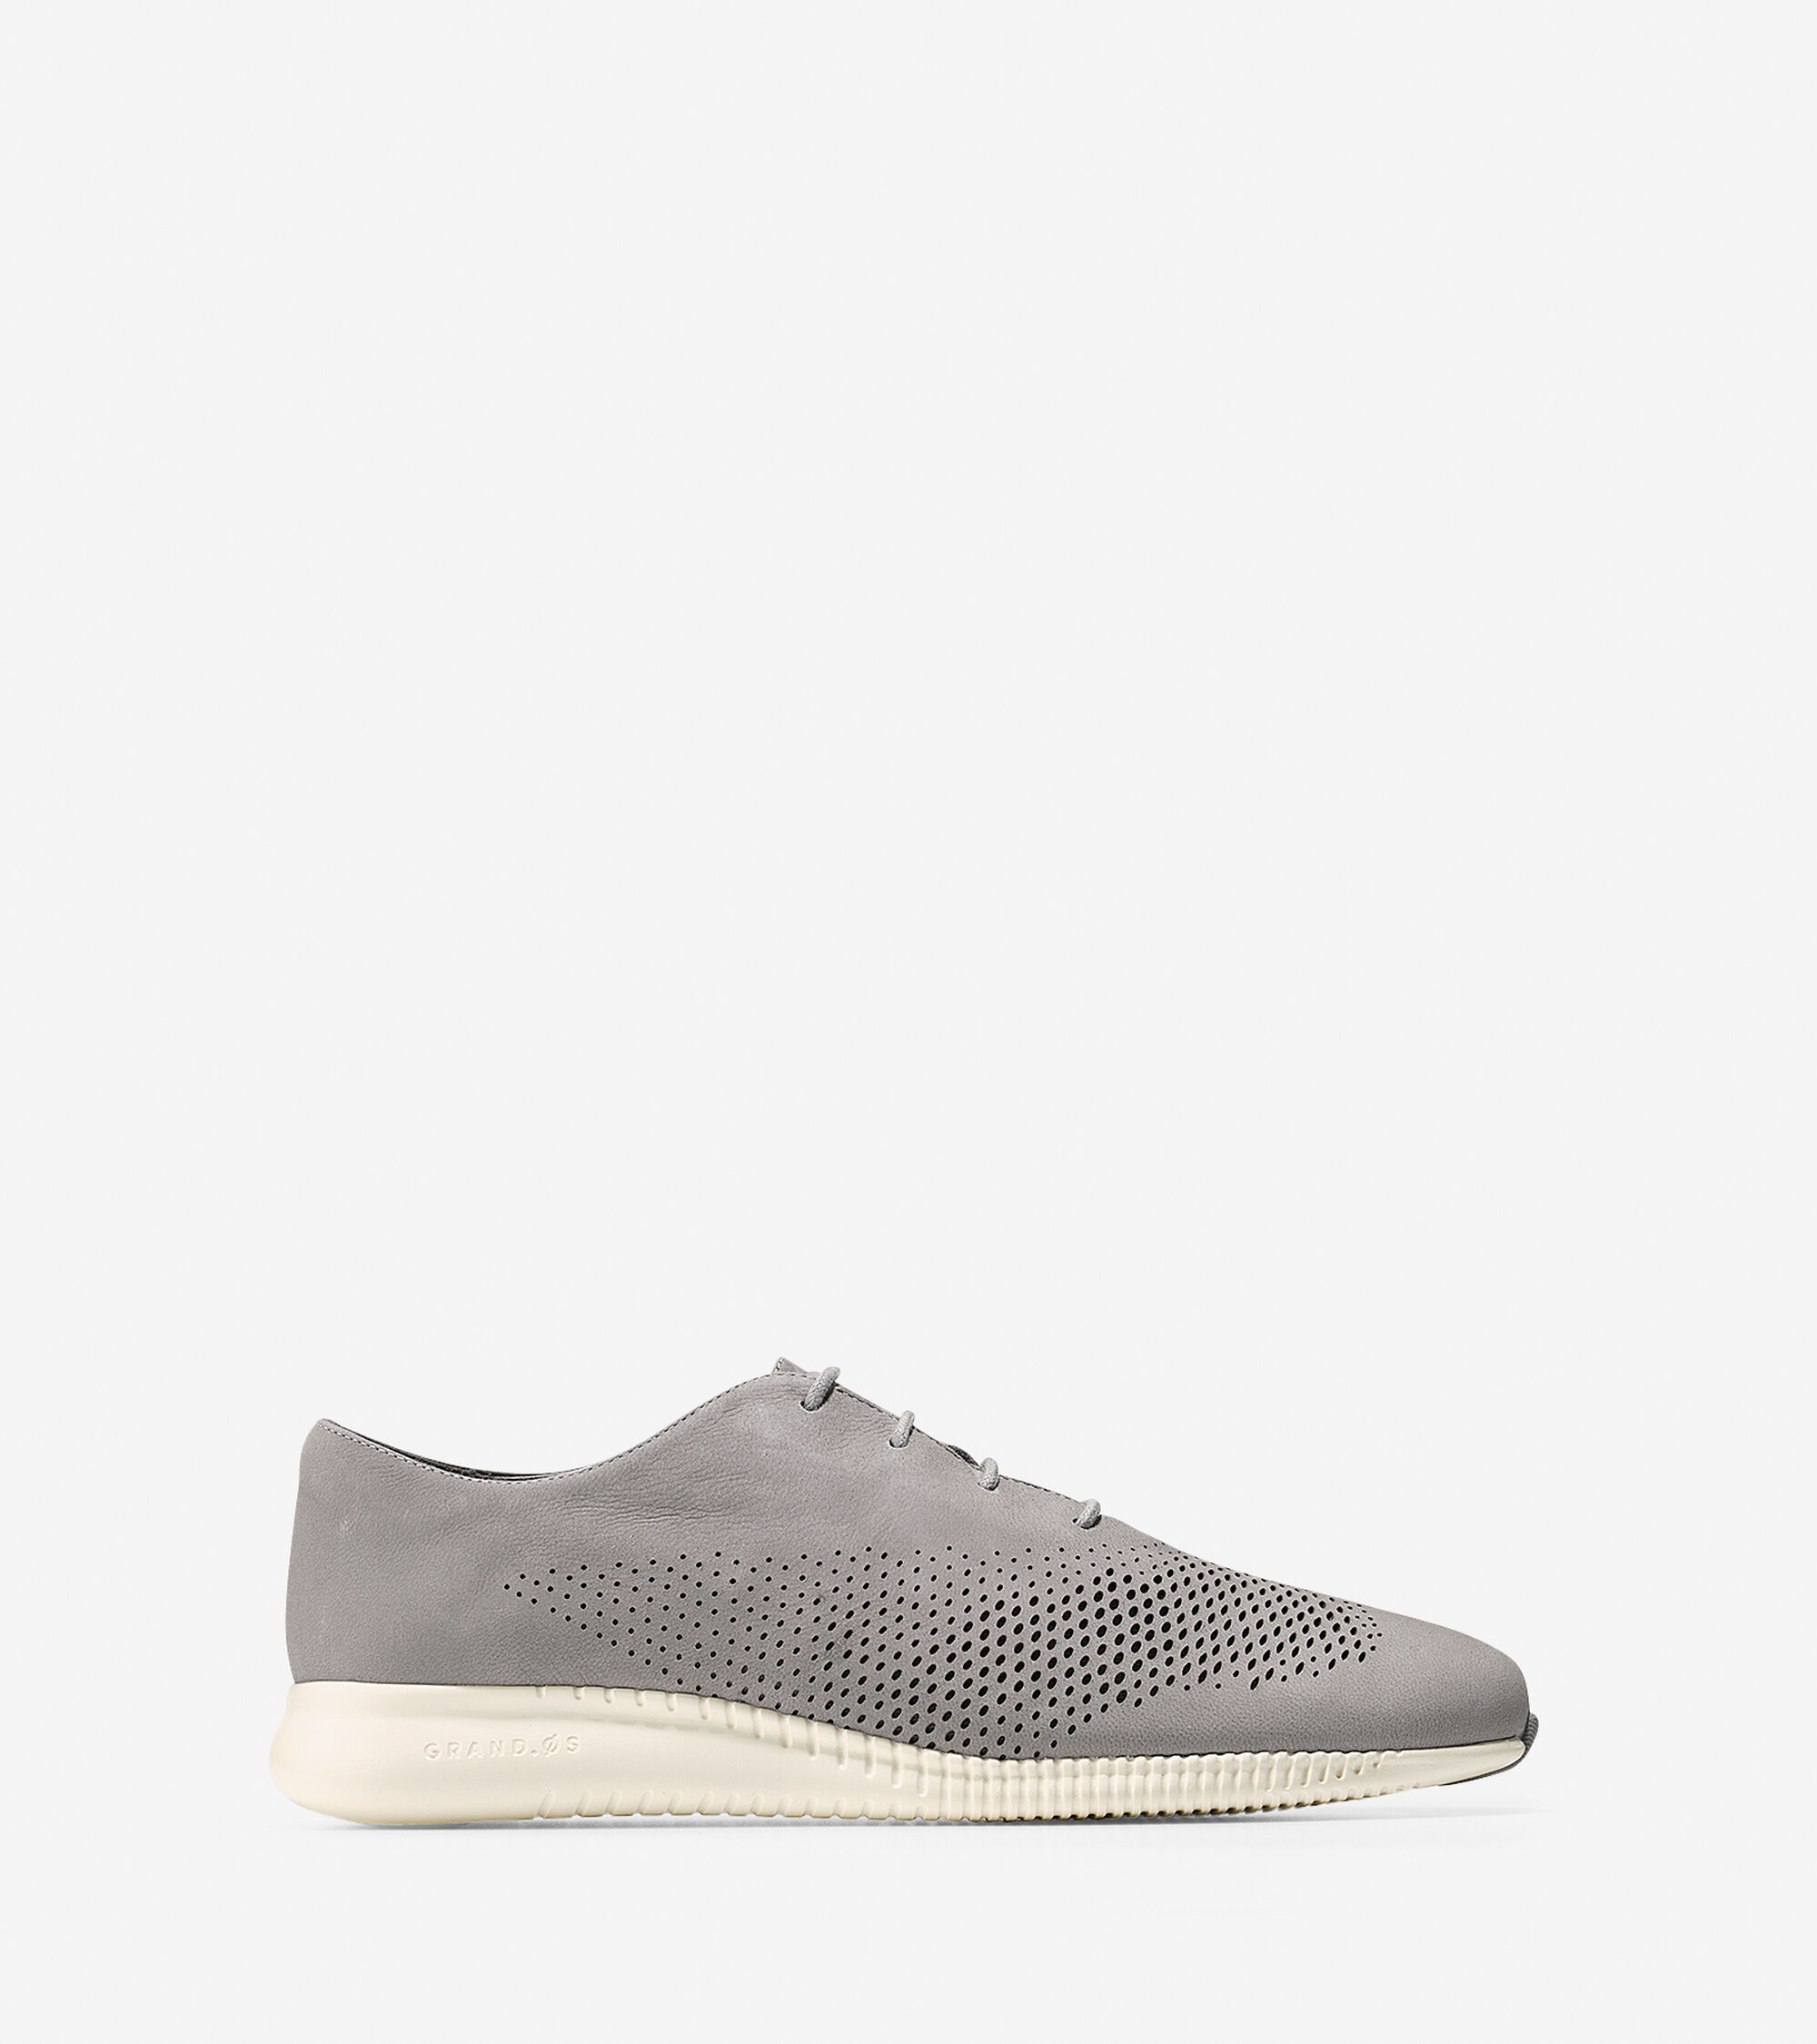 Cole Haan Womens 2.ZEROGRAND Laser Wingtip Oxford Shoes